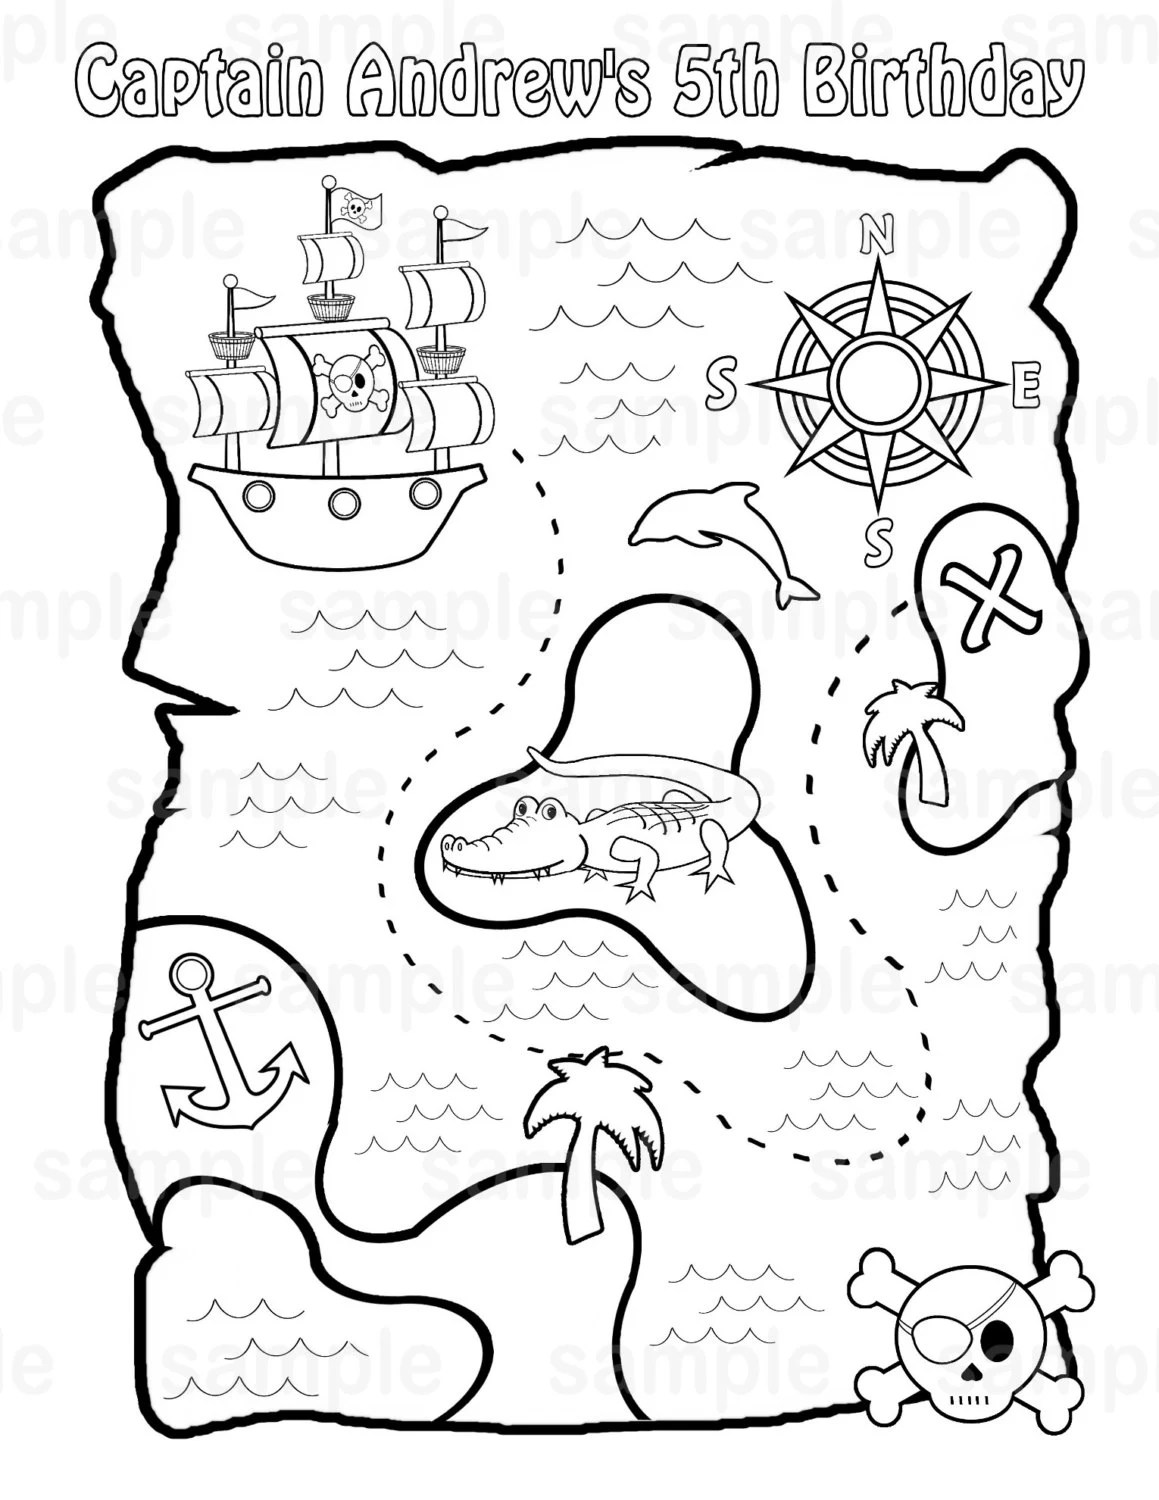 Personalized Printable Pirate Treasure Map Birthday Party